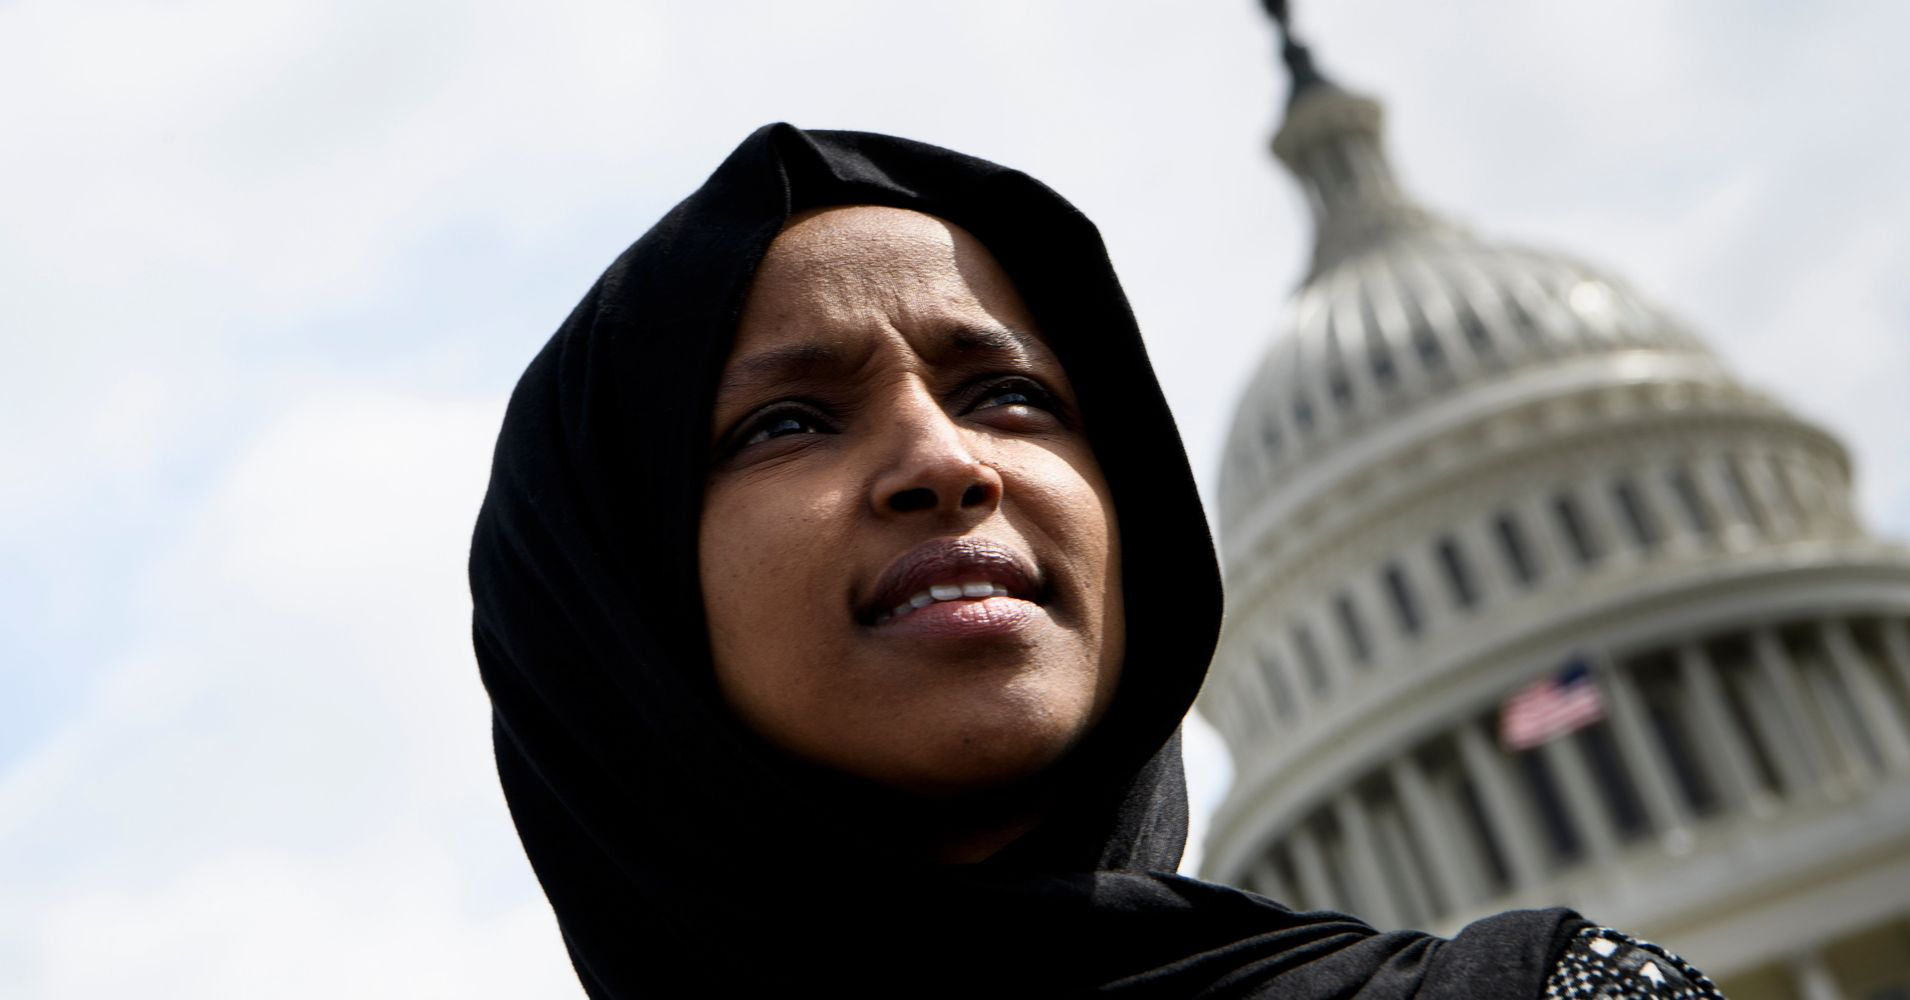 Rep. Ilhan Omar Says Death Threats Have Increased Since Trump's Attack